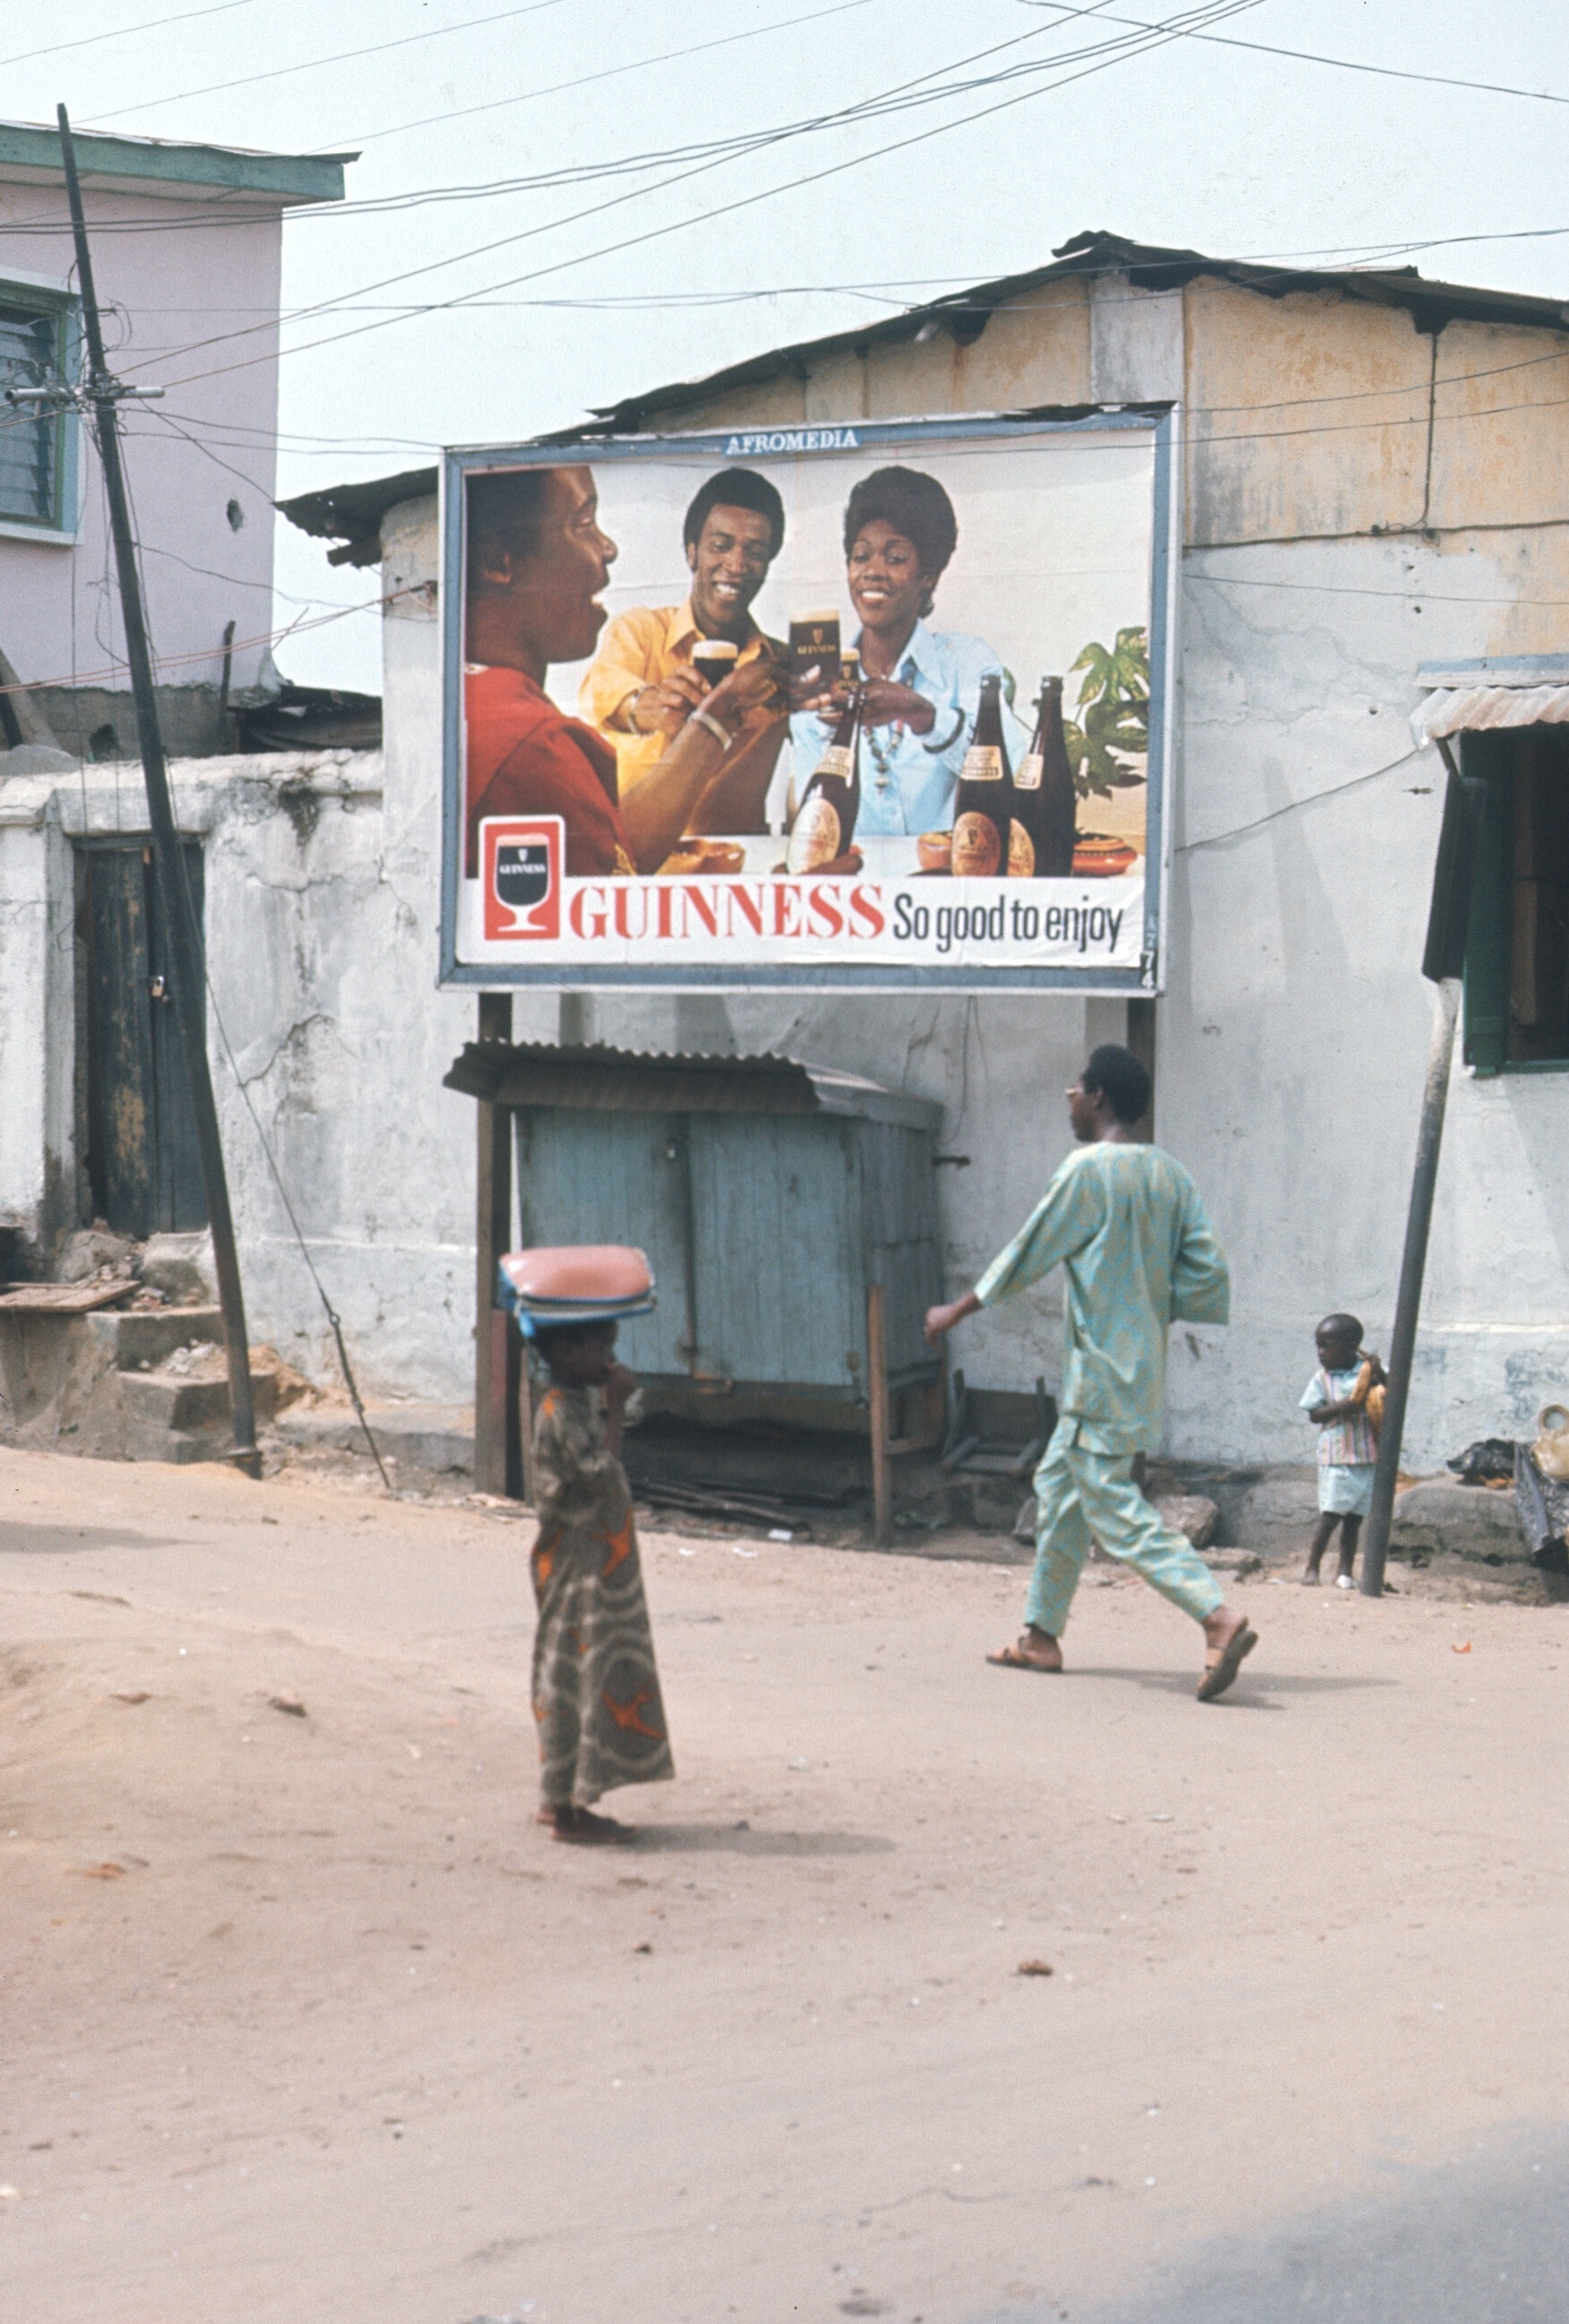 On the streets of Lagos